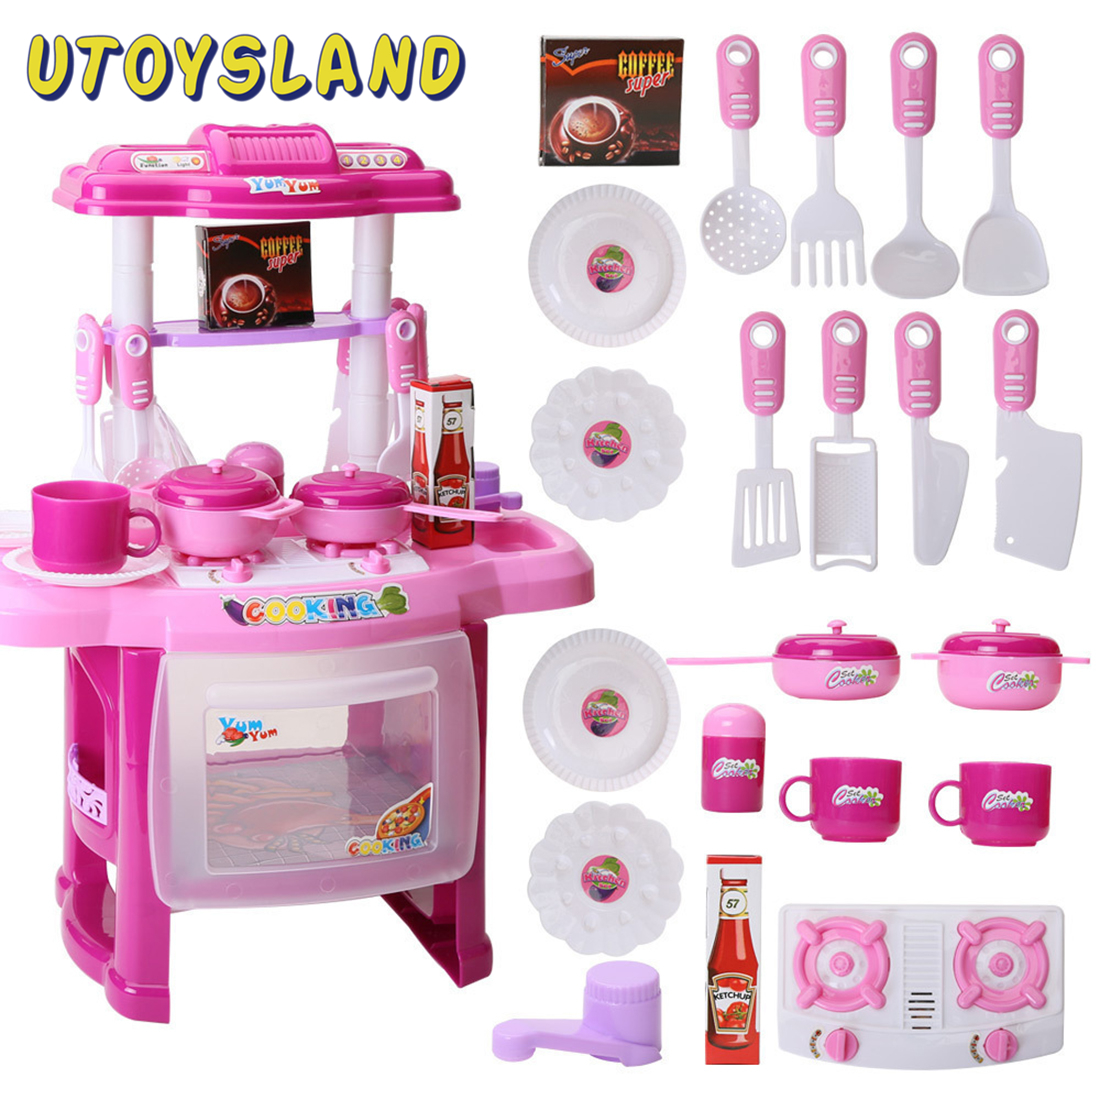 23Pcs Children Pretend Play Kitchen Table Set Kitchen Appliance Cooking Play Set Toy Kitchen With Music And Light For Girls-Pink